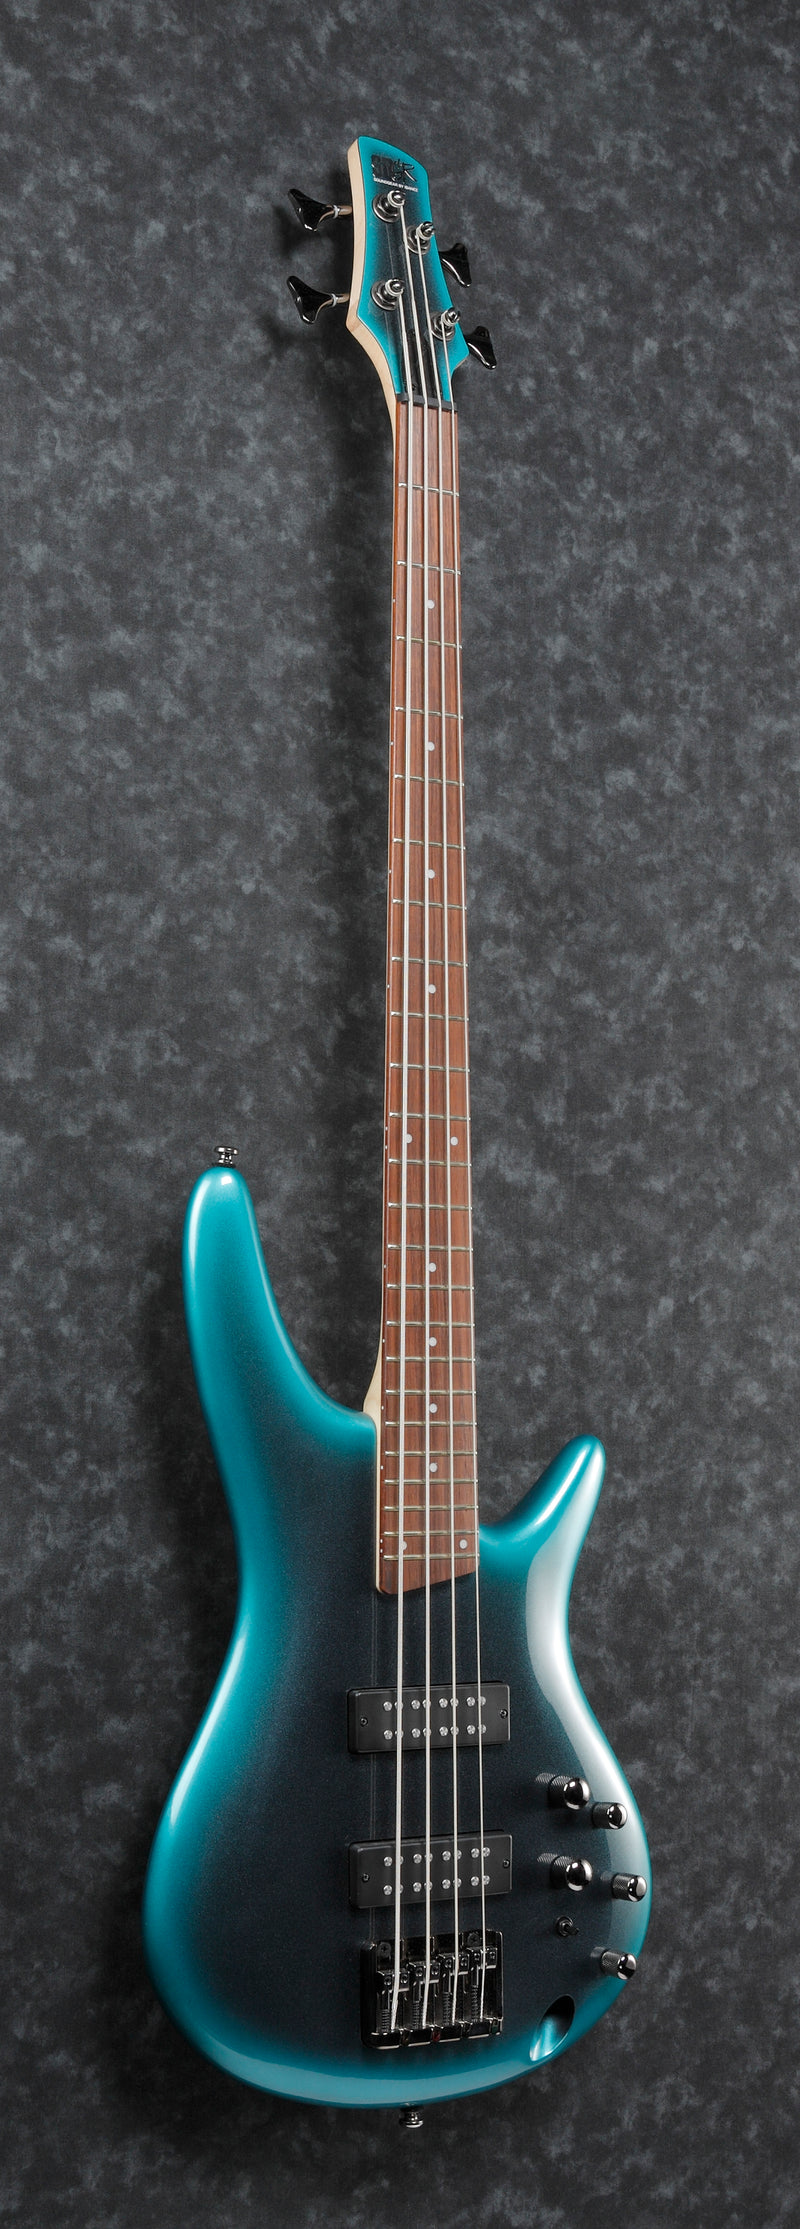 Ibanez SR300E Electric Bass - Cerulean Aura Burst